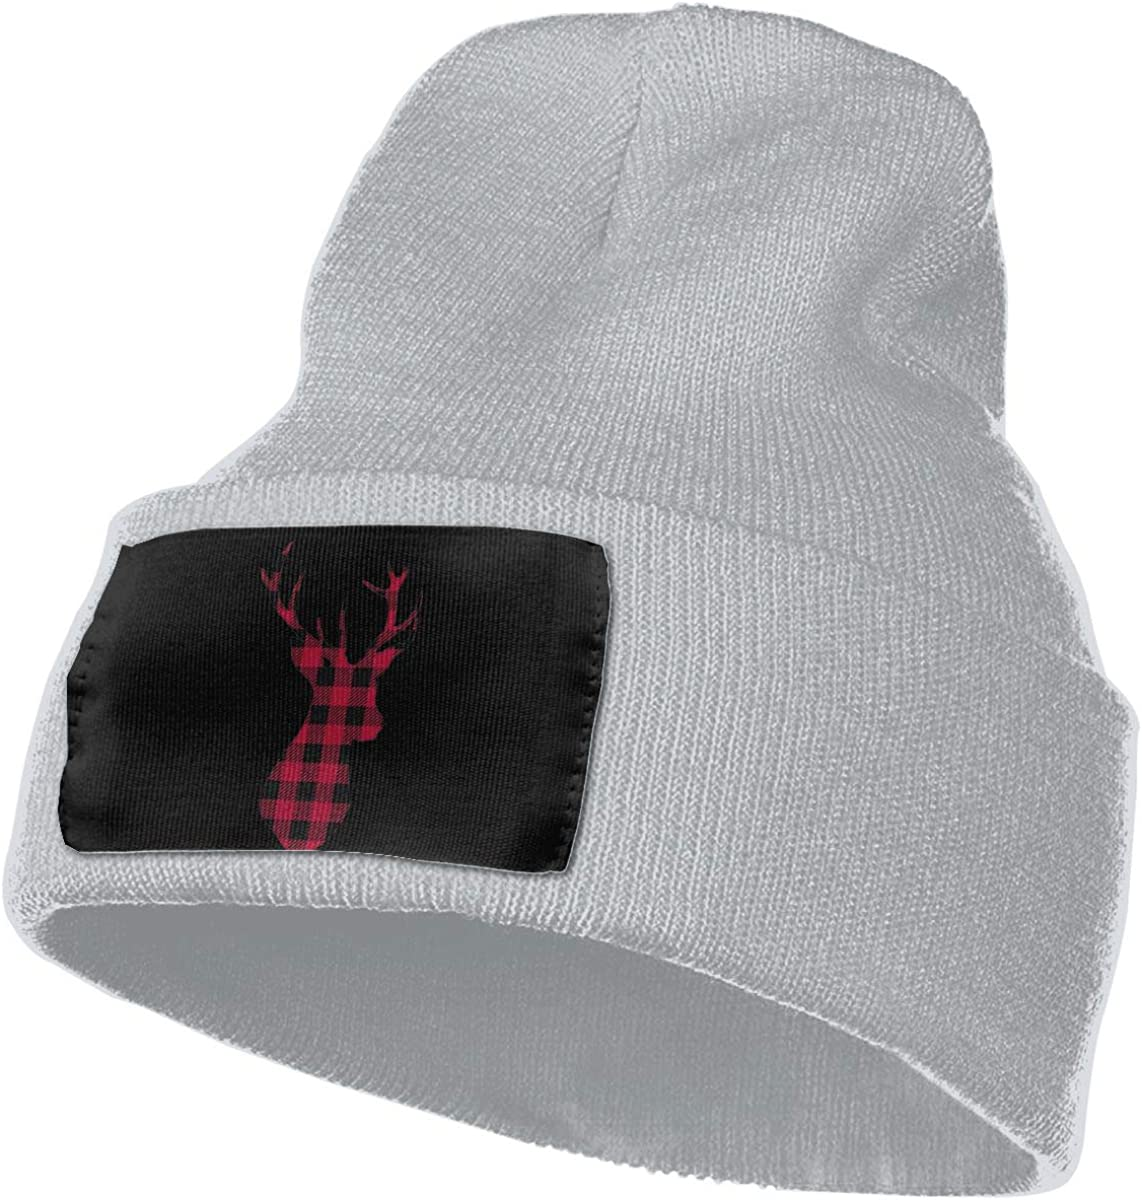 Buffalo Plaid Moose Warm Winter Hat Knit Beanie Skull Cap Cuff Beanie Hat Winter Hats for Men /& Women